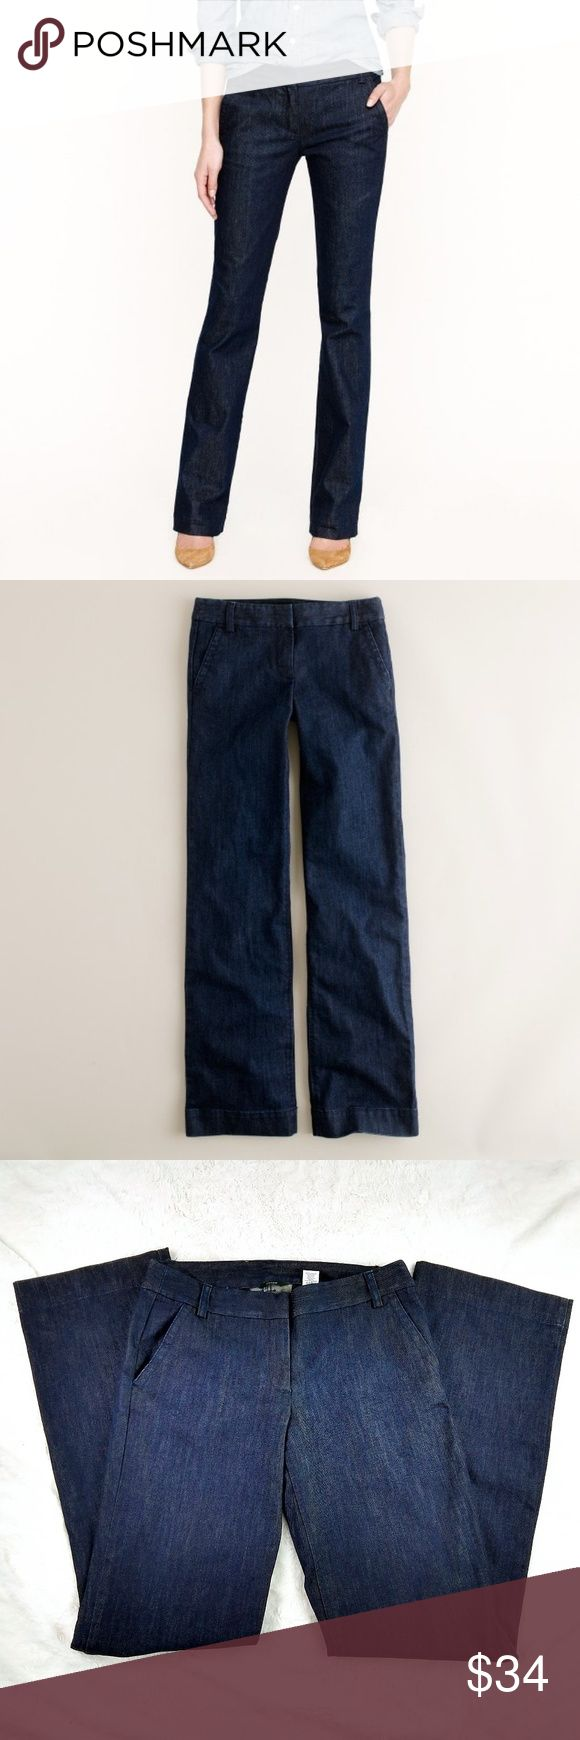 J. Crew Tall Trouser Jeans in classic rinse wash J. Crew Tall Trouser Jeans in classic rinse wash Our modern-girl trouser in a classic dark rinse and an exciting new Italian denim that we love for its saturated indigo and its pristine, polished look.  Italian cotton with a hint of stretch. Sits lower on hips. Fitted through hip and thigh, with a straight trouser leg. Machine wash. Item 29273.  Waist: 34in Hips: 42in Inseam: 36in Outerseam: 44.5in  Thanks for stopping by. J. Crew Jeans Flare…